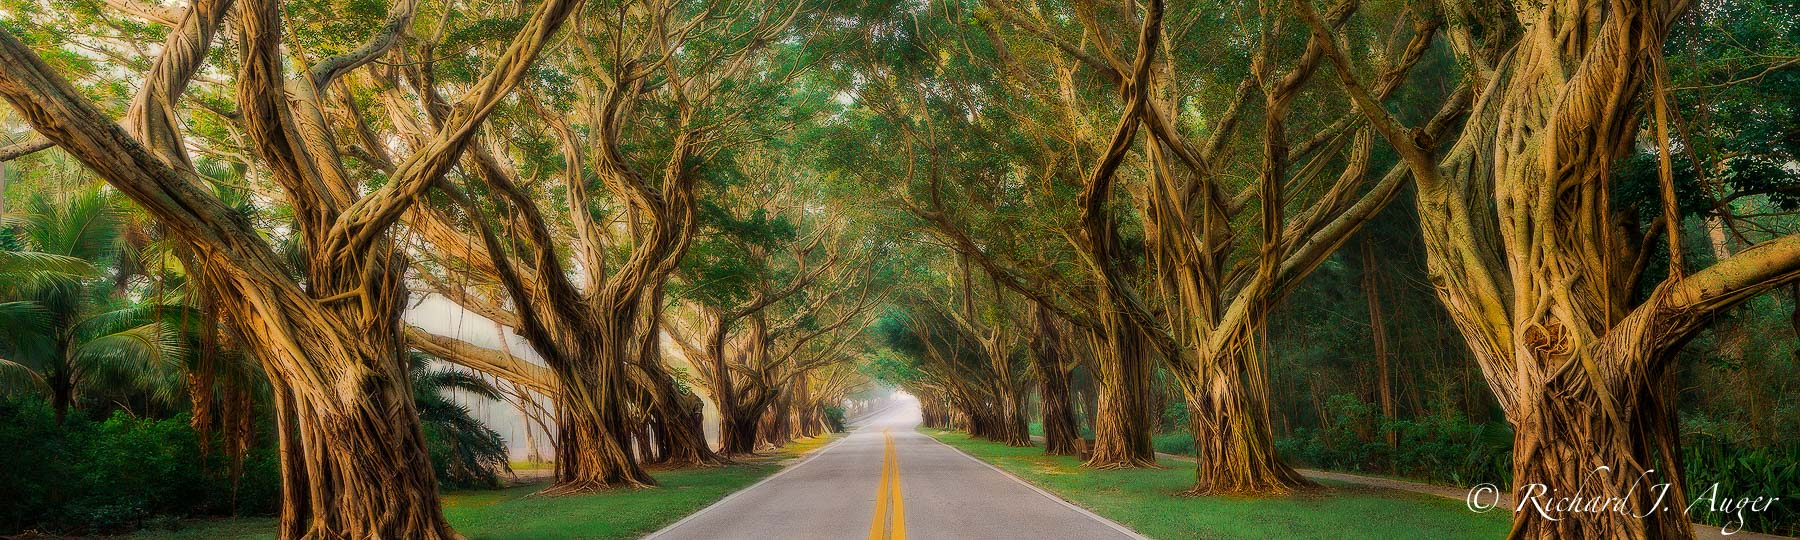 Hobe Sound, Florida, Jupiter Island, Banyan Trees, Fog, Road, Morning